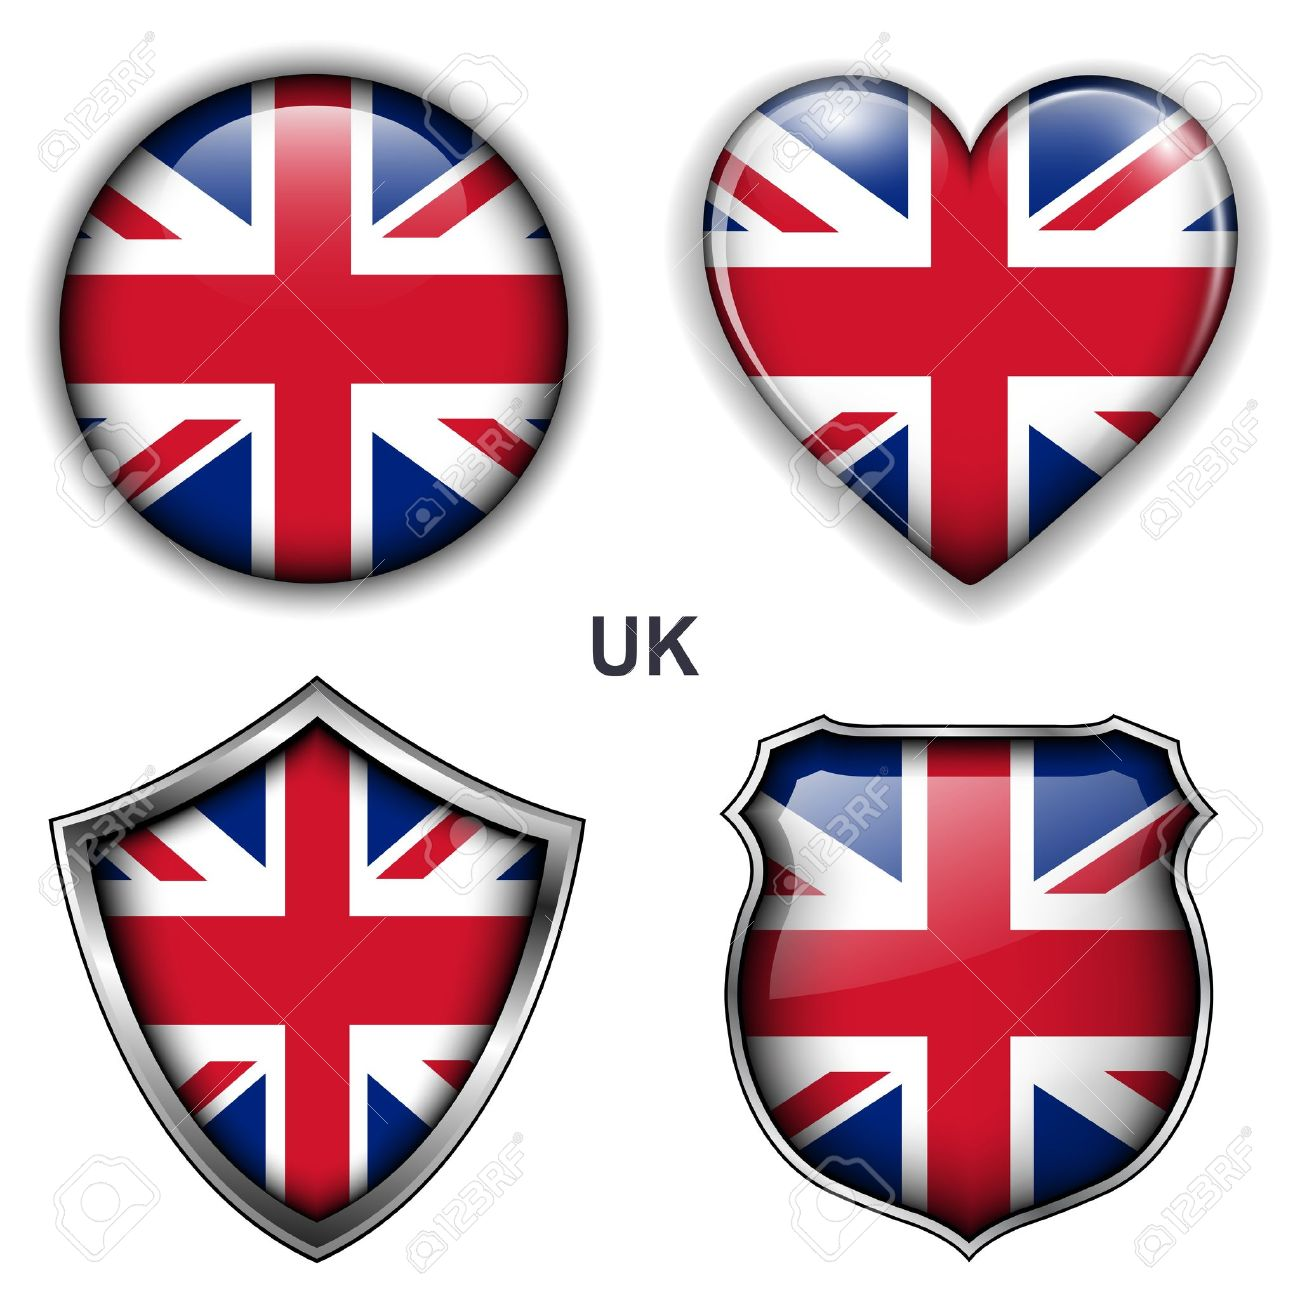 40 290 england stock vector illustration and royalty free england